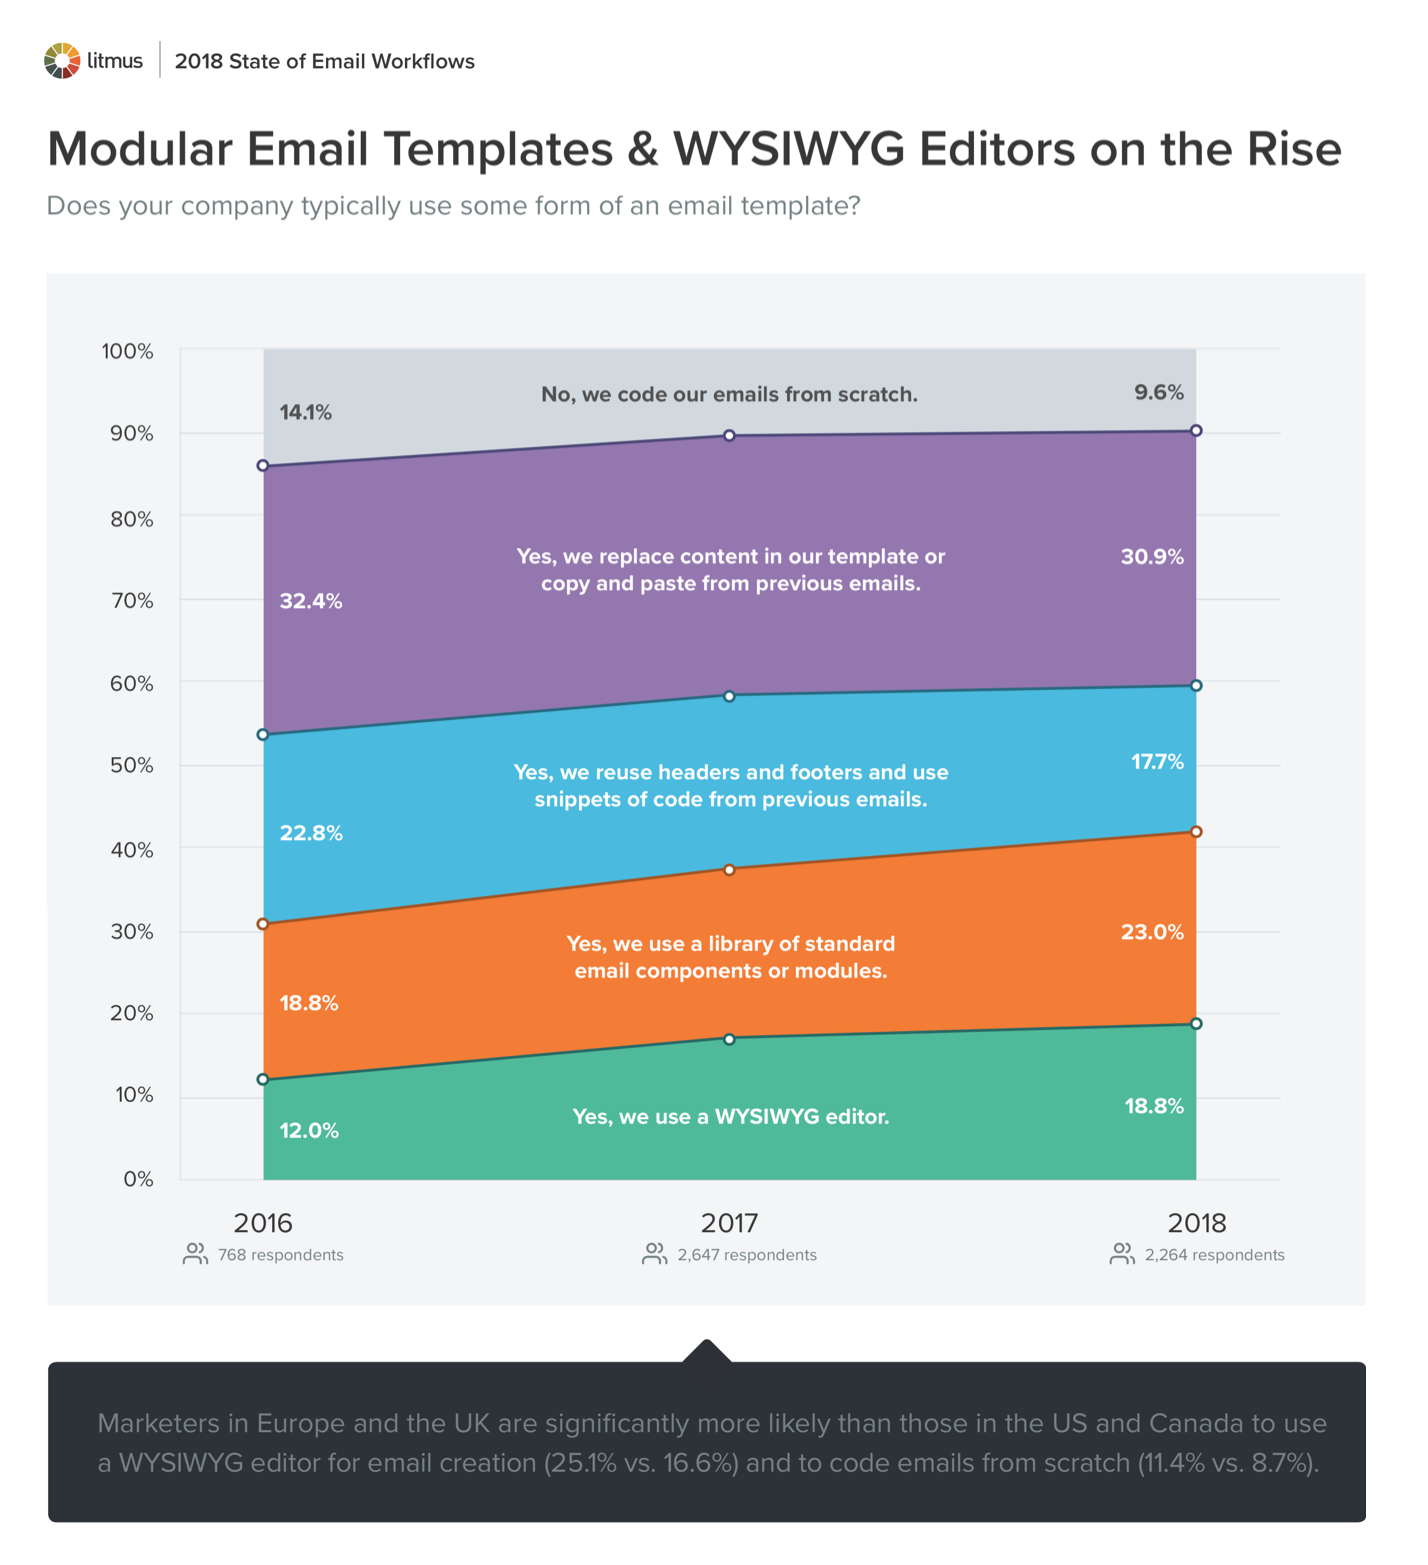 Modular Email Templates and WYSIWYG Editors on the Rise